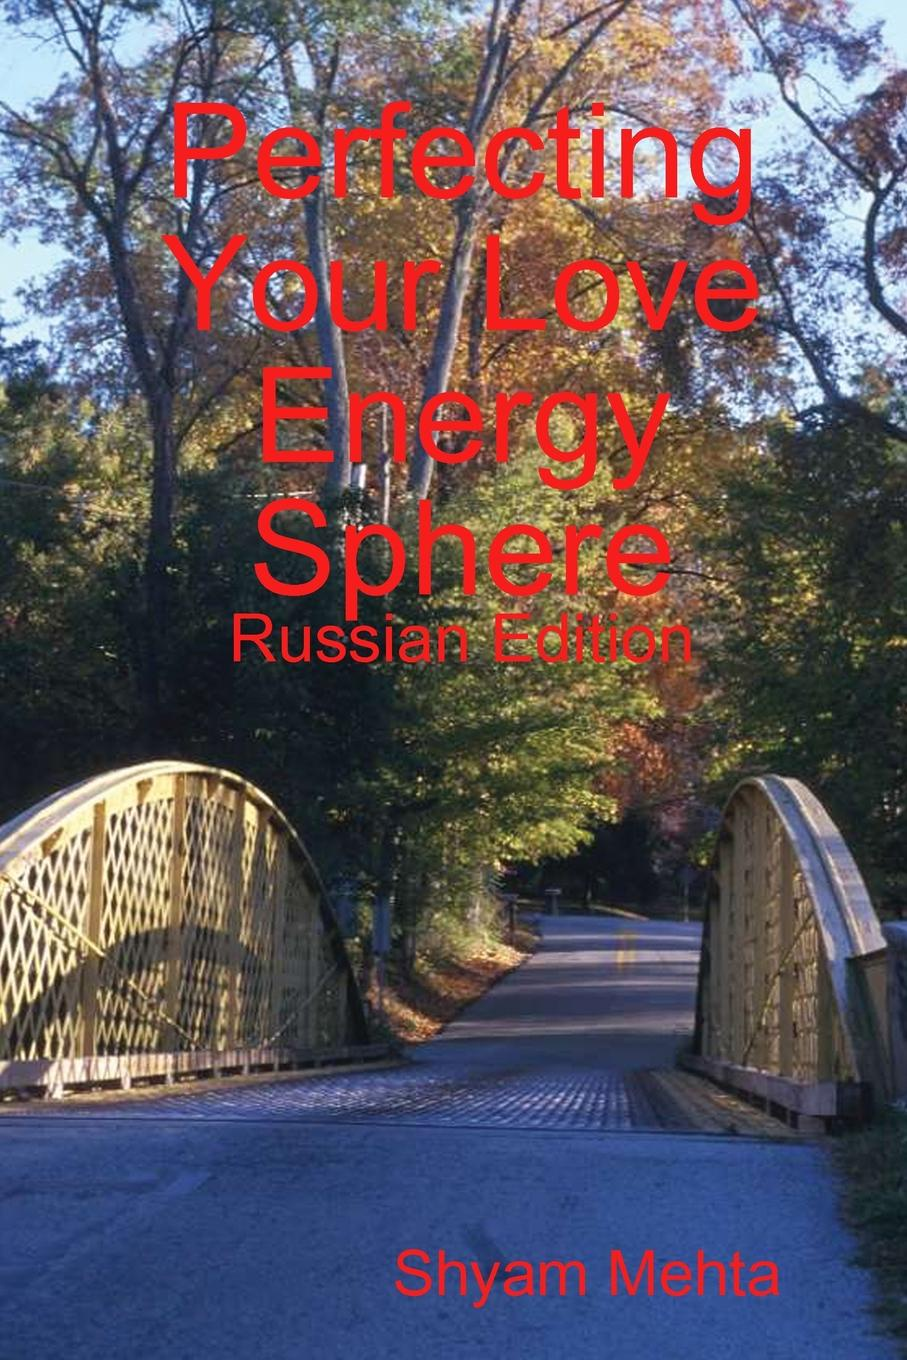 Shyam Mehta Perfecting Your Love Energy Sphere. Russian Edition shyam mehta stories for children spanish edition